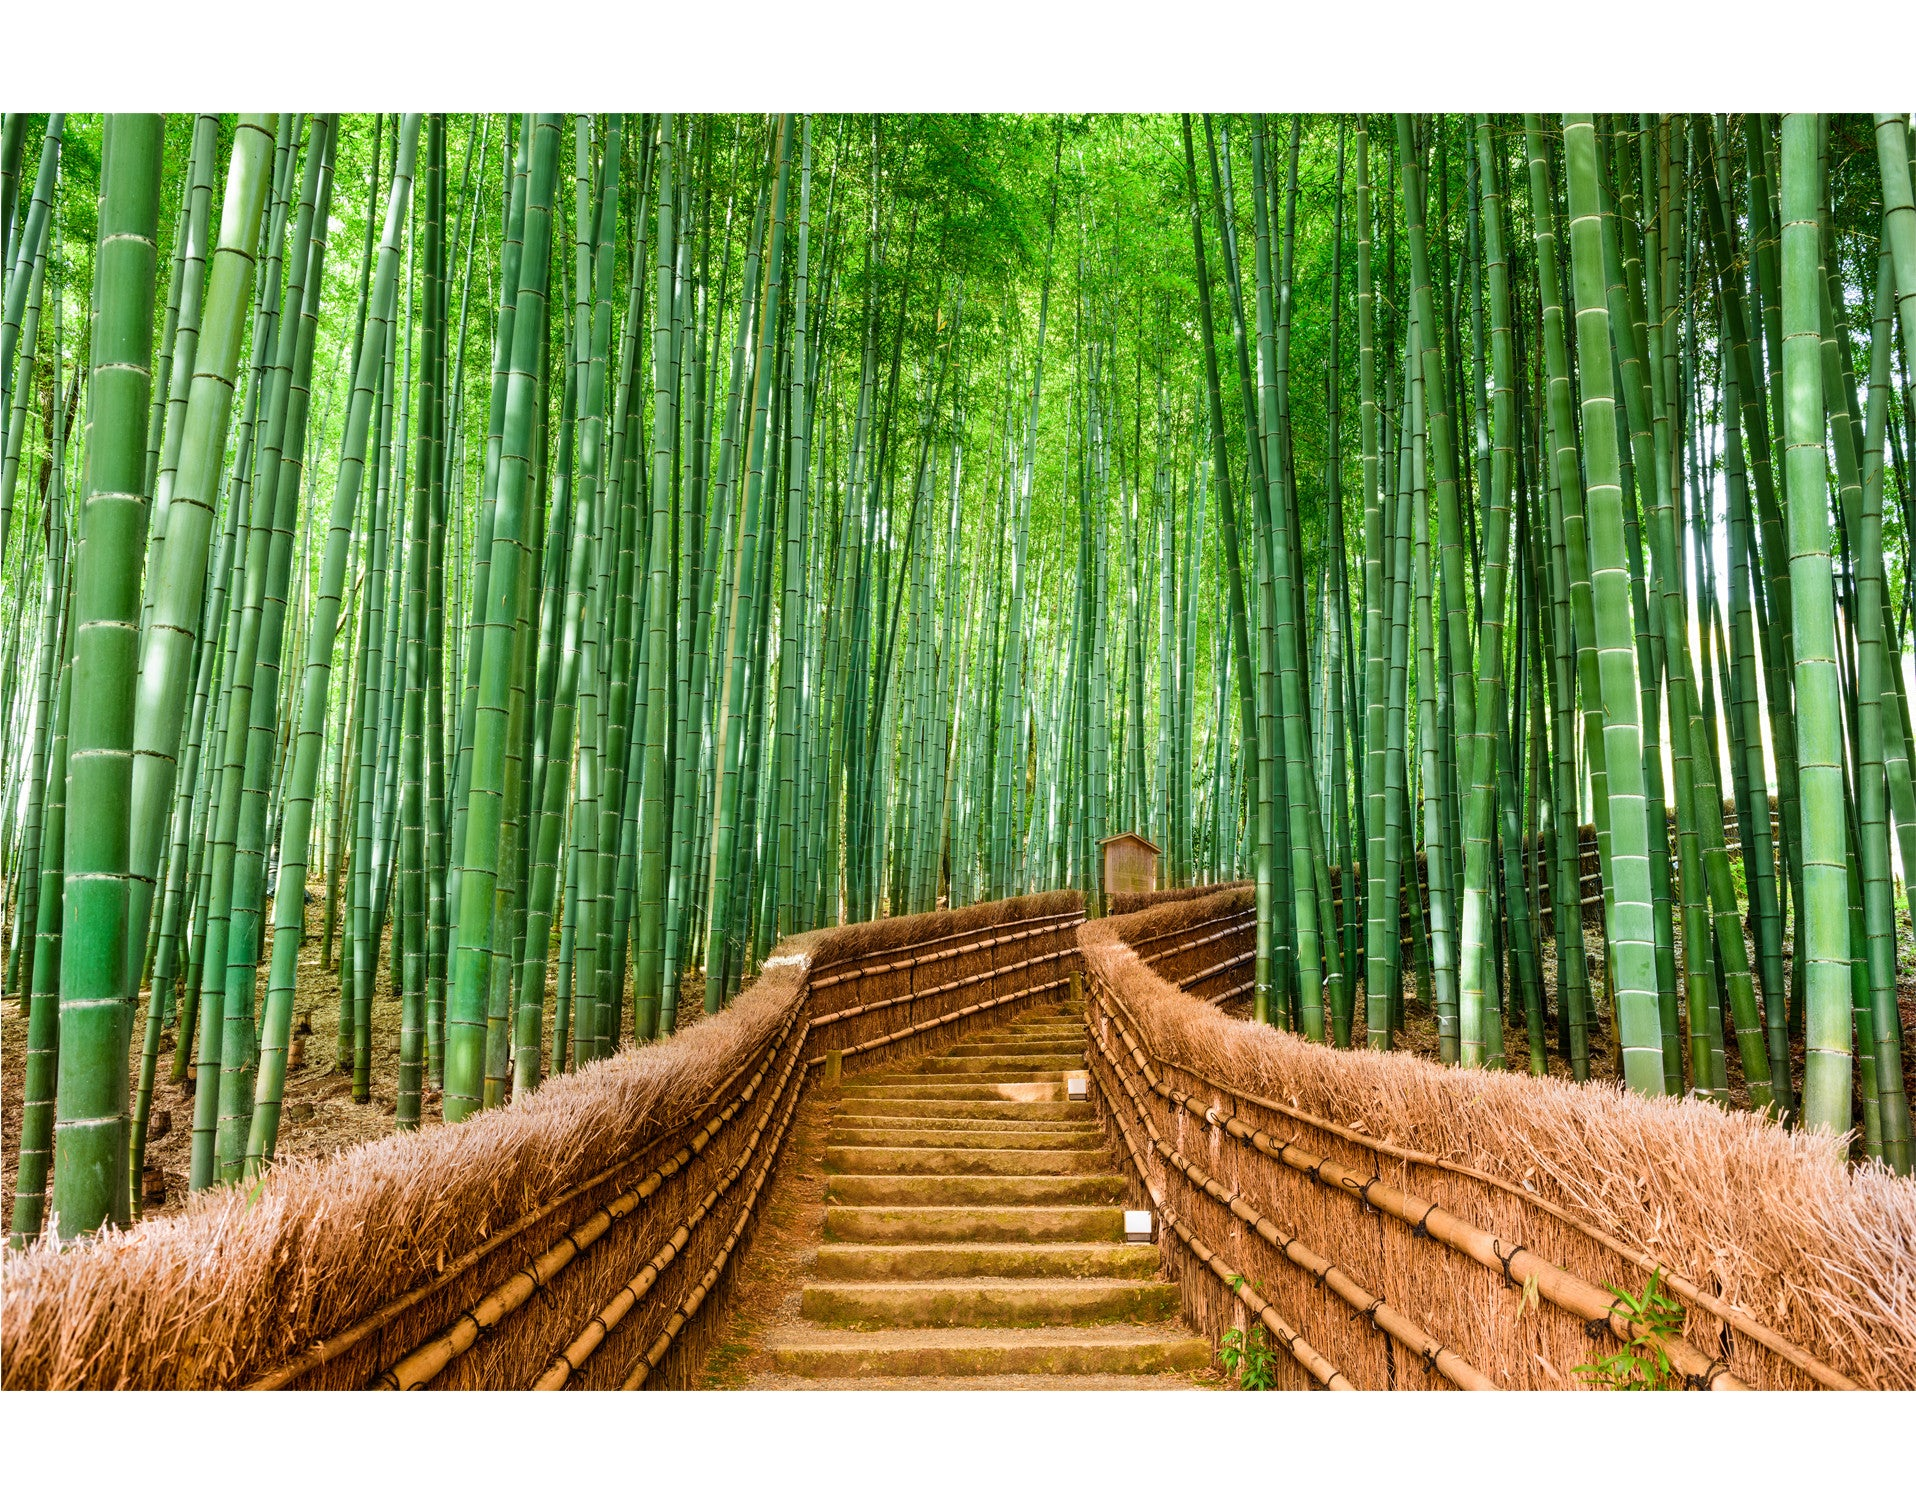 Bamboo forest wall mural 6043 for Bamboo forest mural